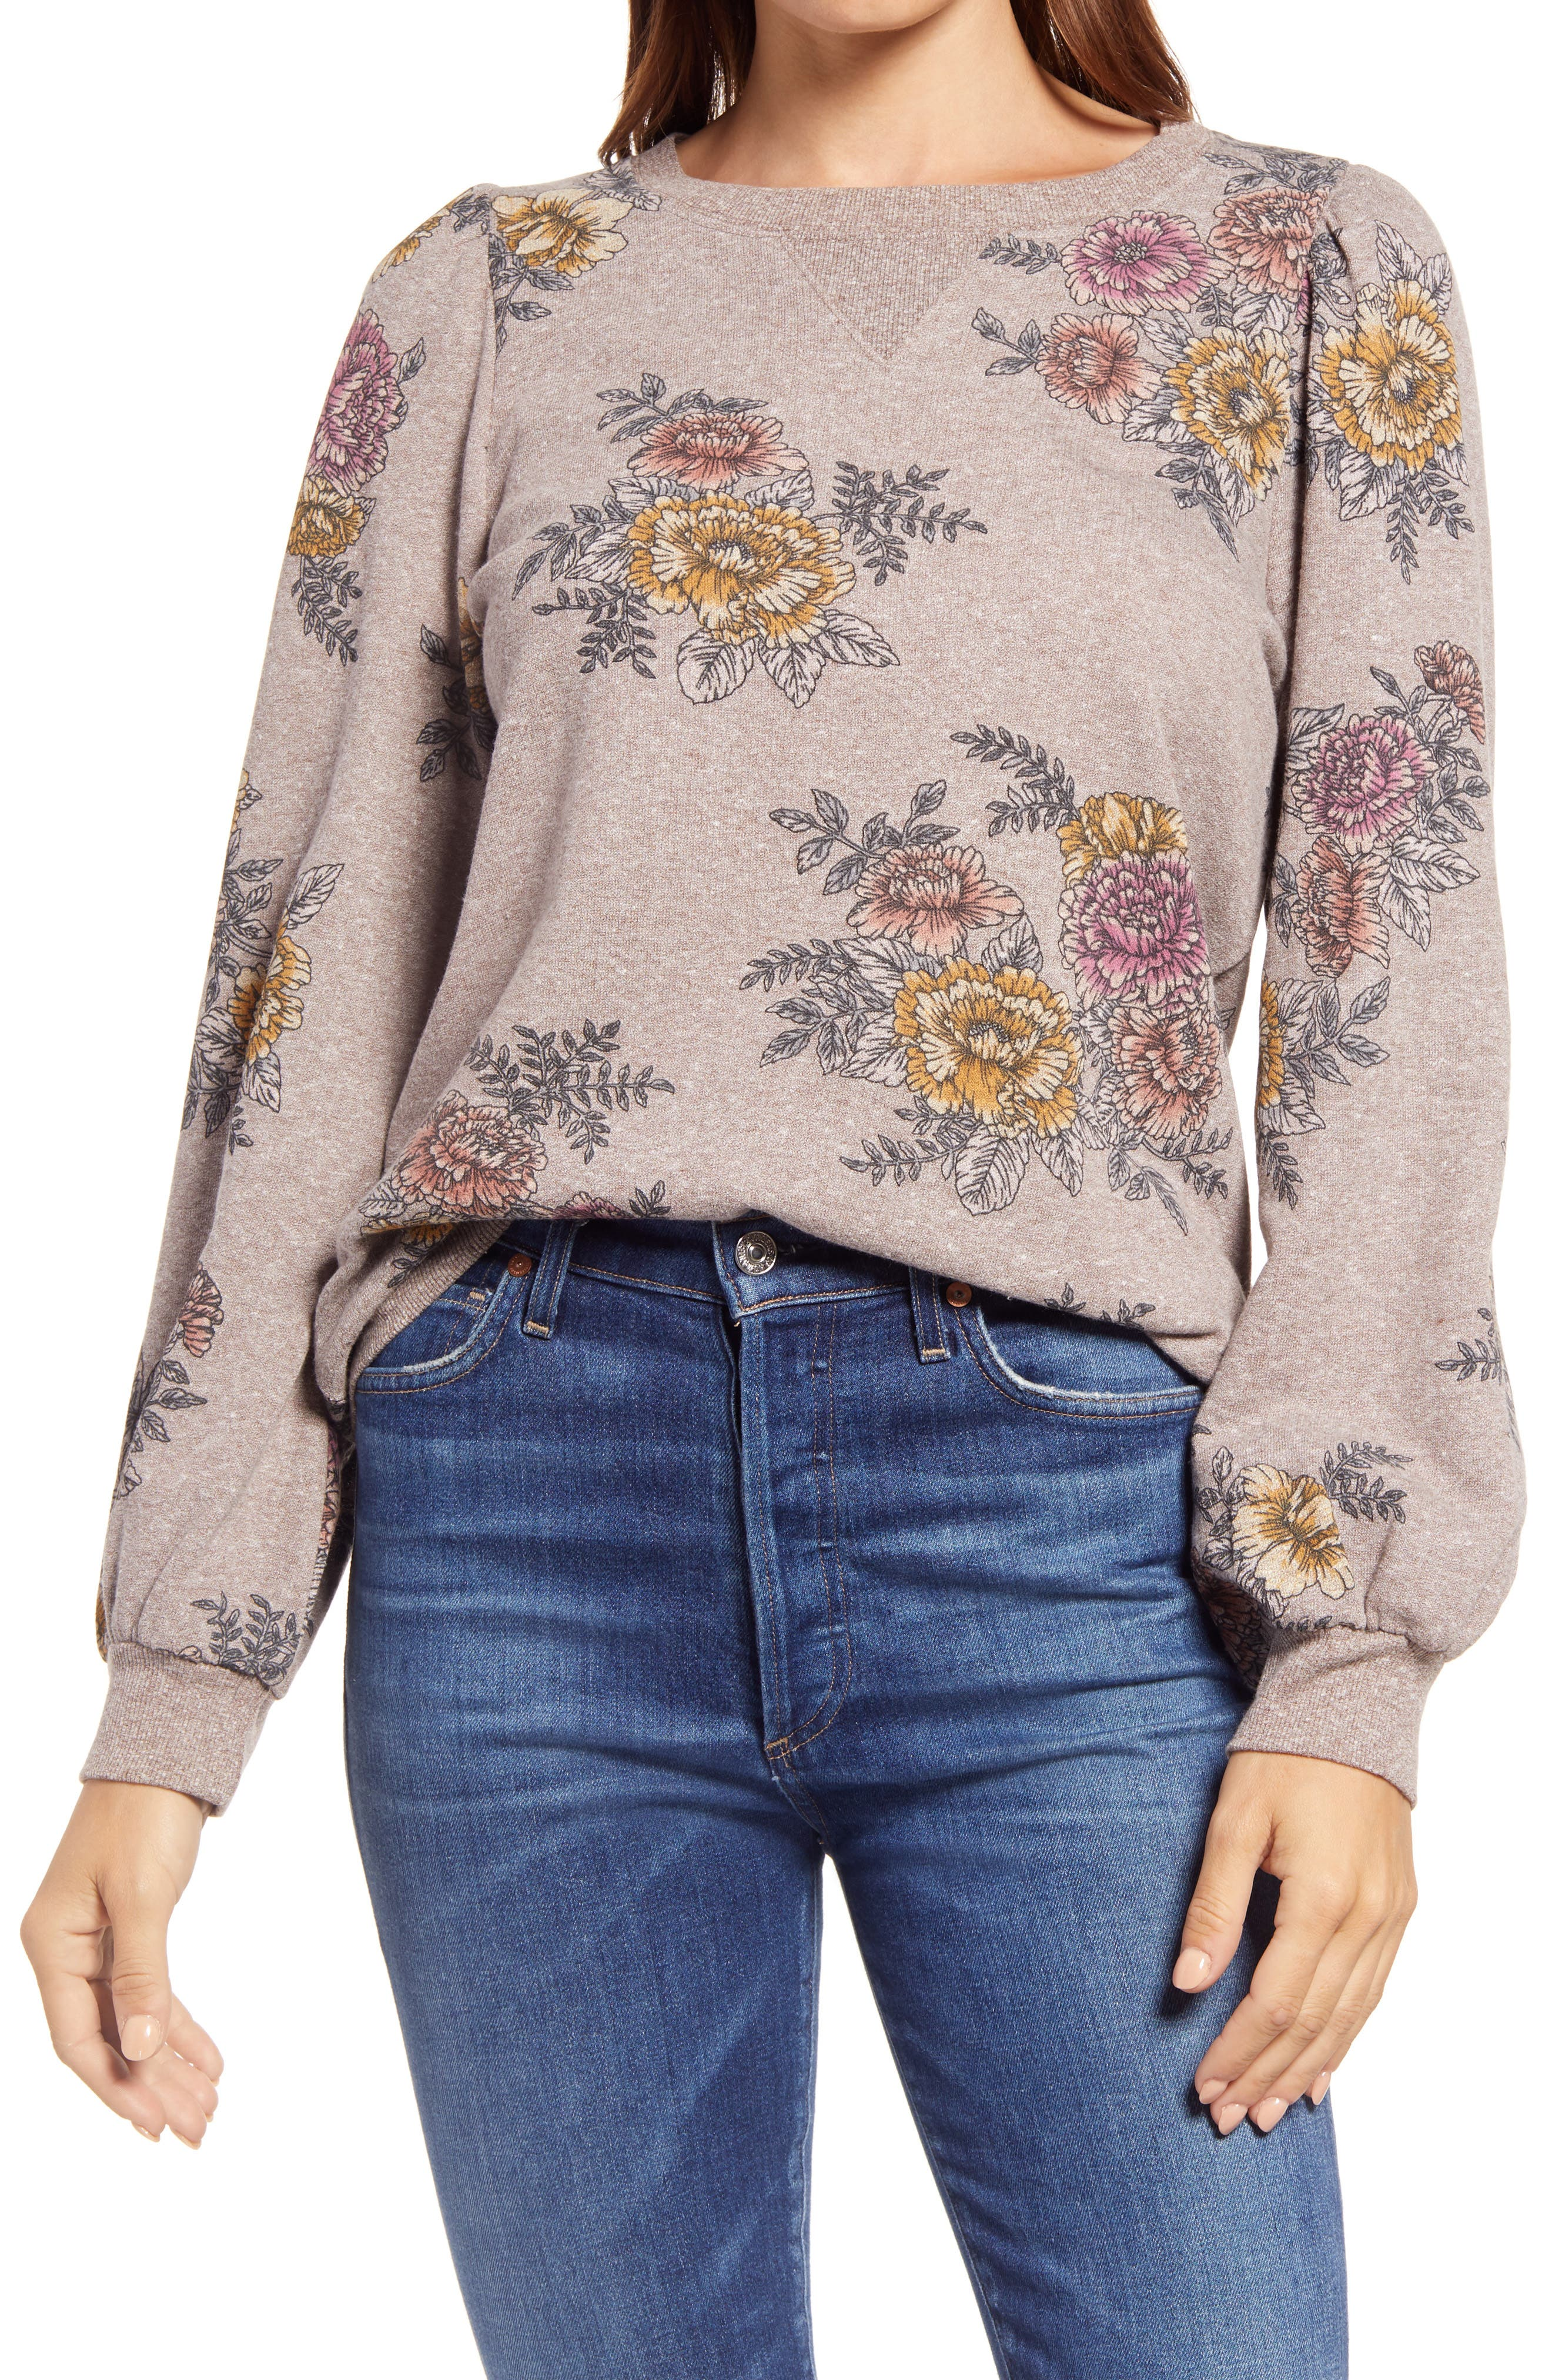 Vintage-inspired floral motifs add undeniable charm to a French terry sweatshirt finished with flowy blouson sleeves. Style Name: Wit & Wisdom Floral Print Blouson Sleeve Sweatshirt. Style Number: 6103820. Available in stores.